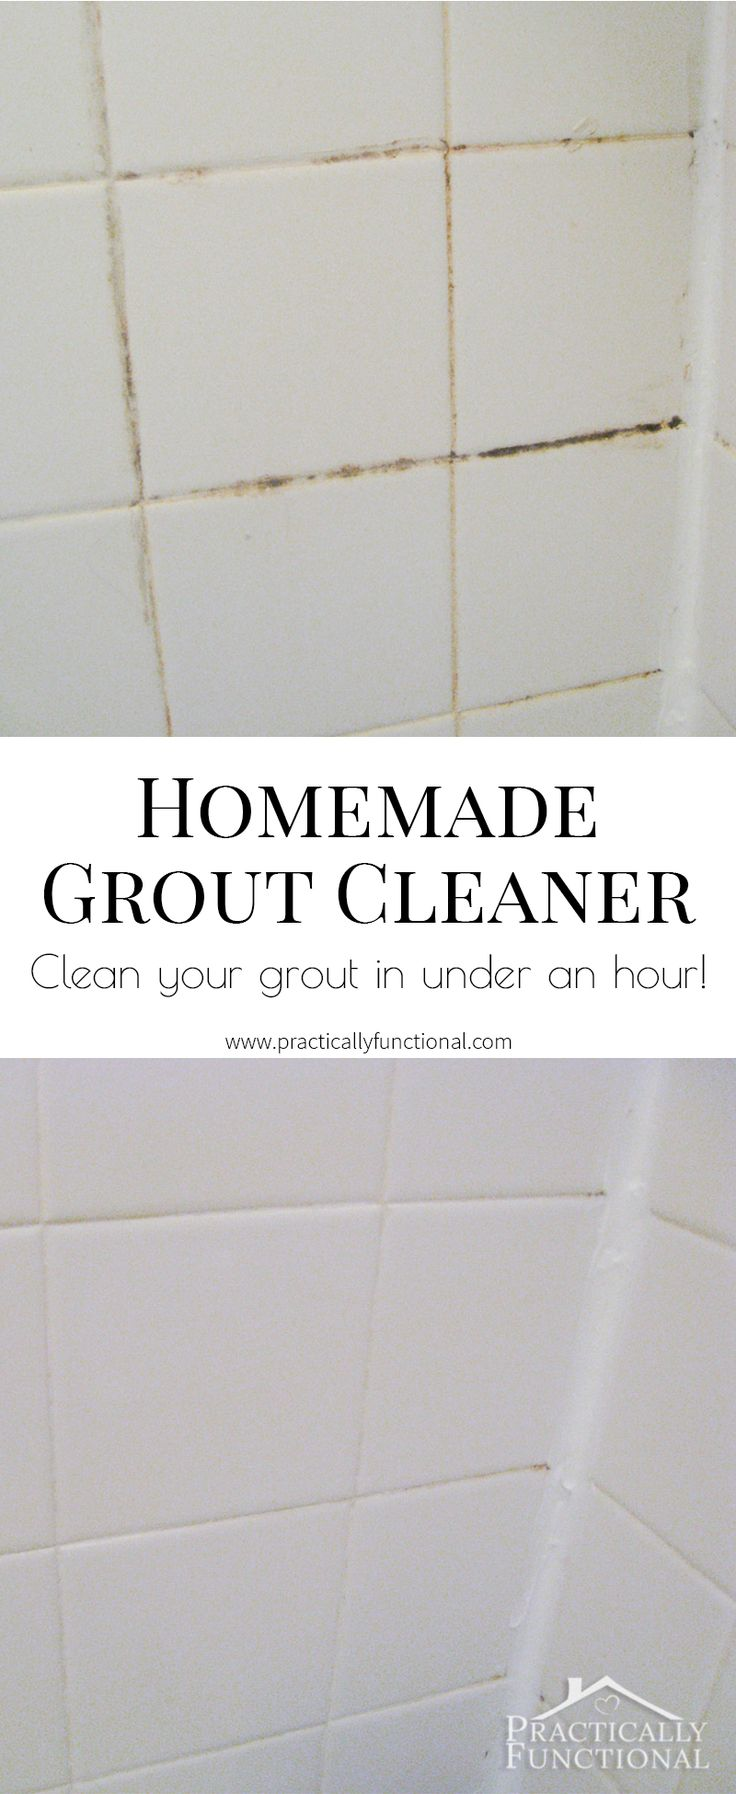 best Home images on Pinterest  Households Cleaning hacks and